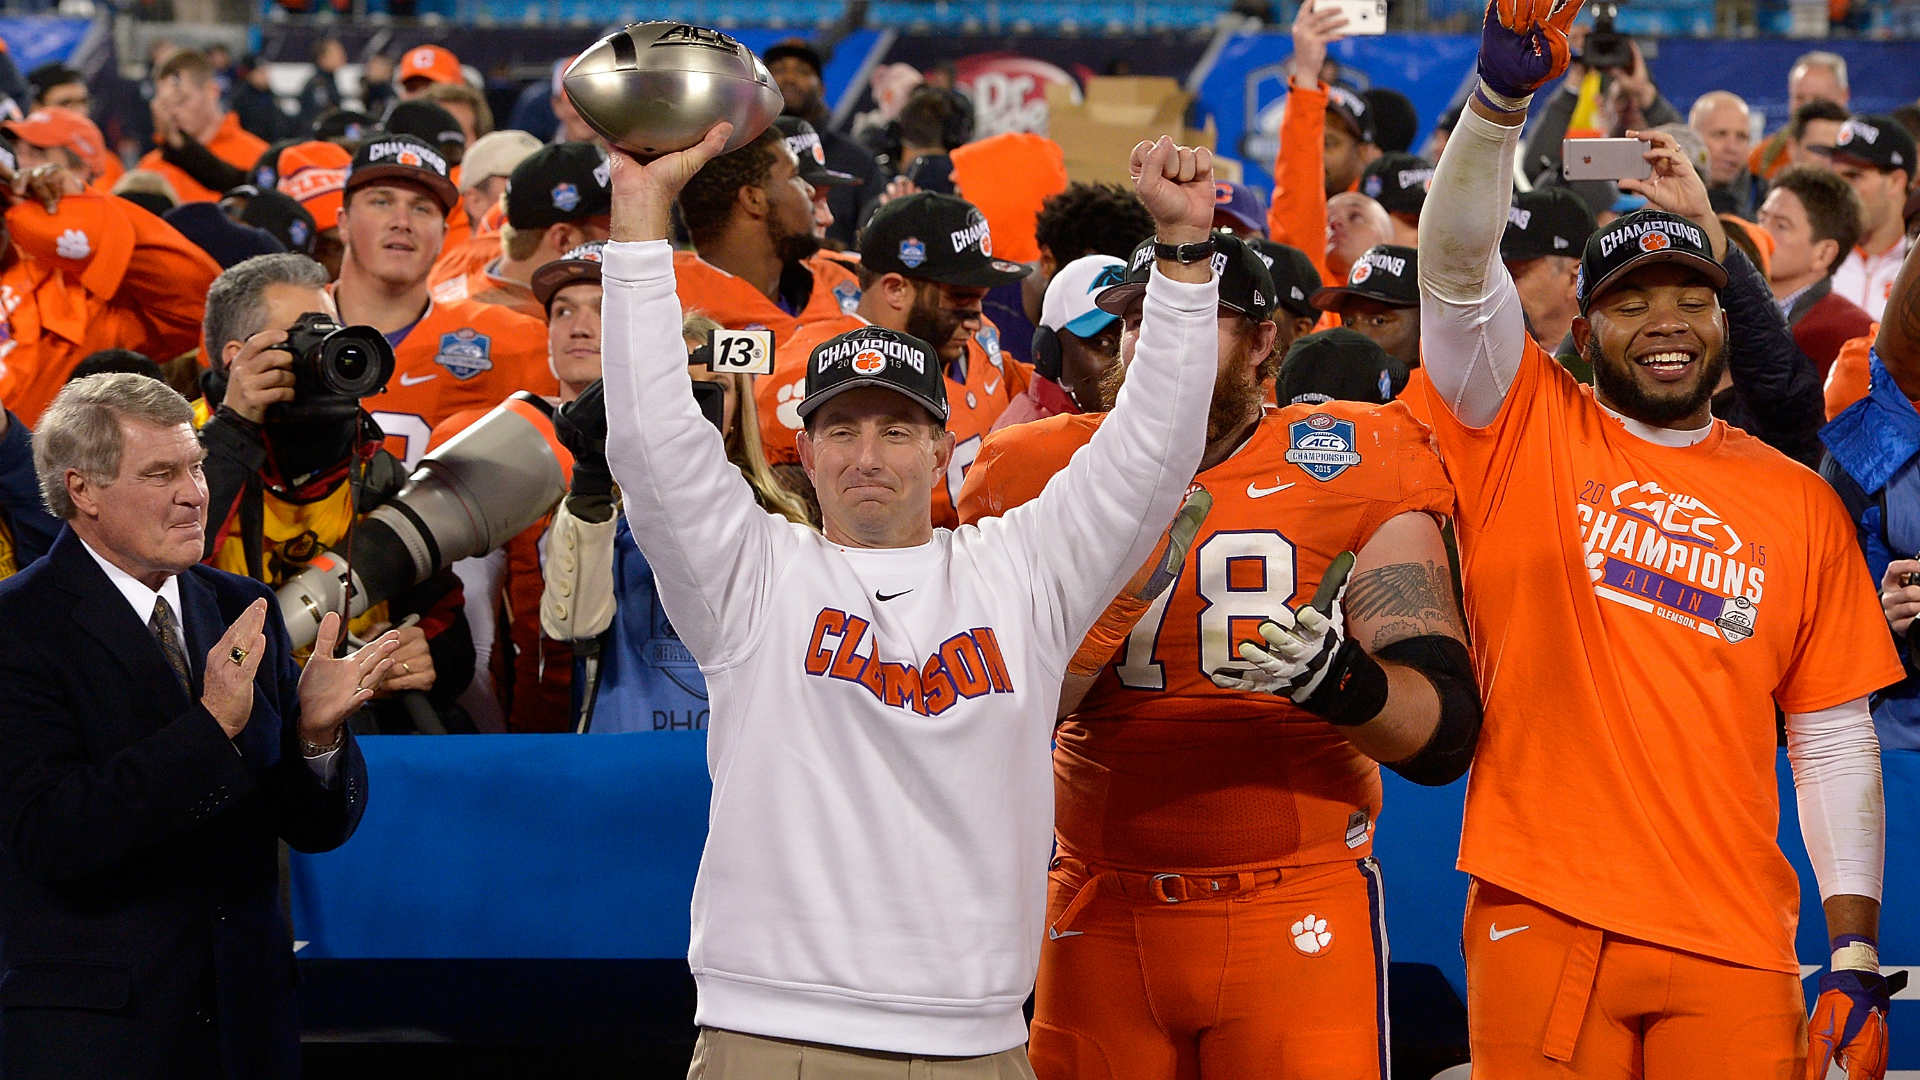 clemson-1252015-us-news-getty-ftr